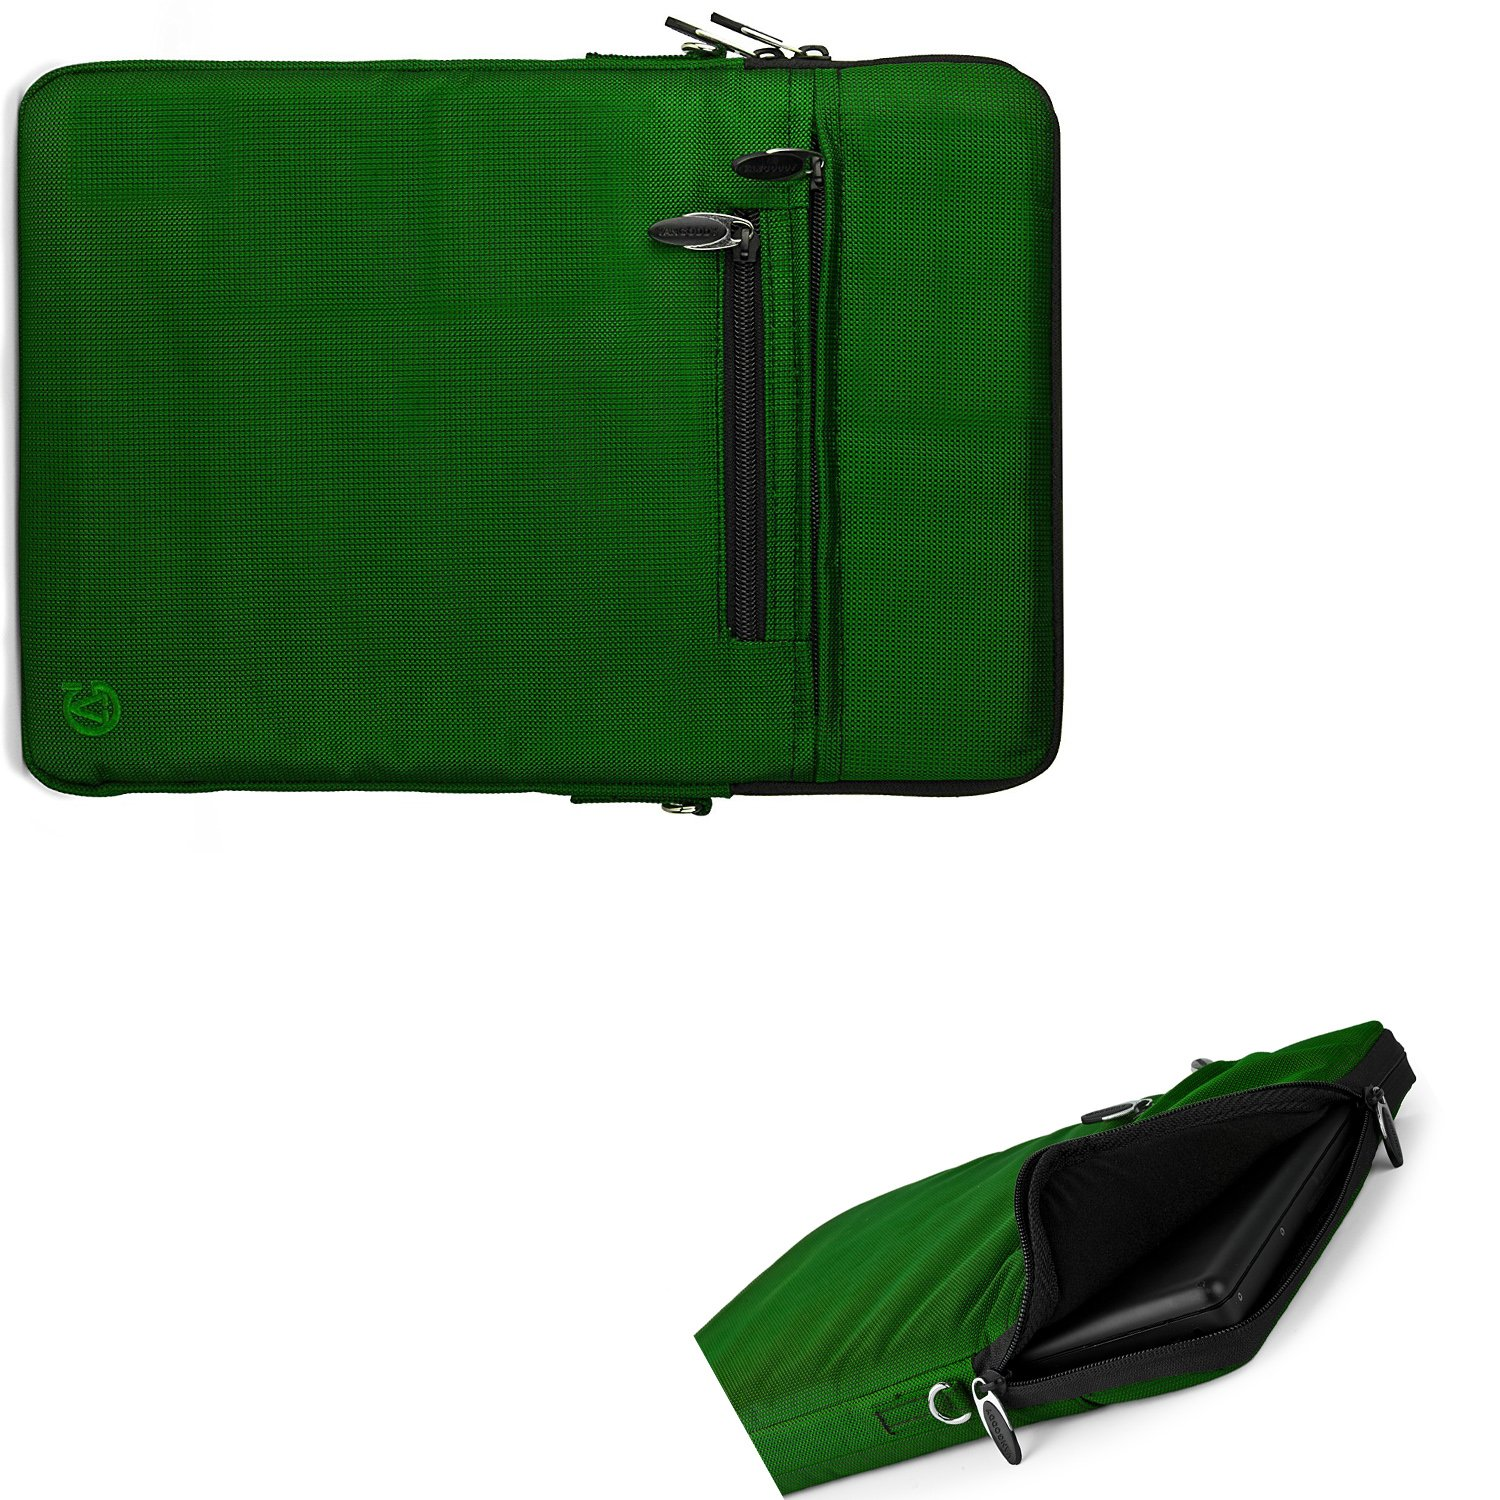 c06fafe50a72 Amazon.com: Travel Laptop Sleeve Pouch Notebook Carrying Case Cover ...